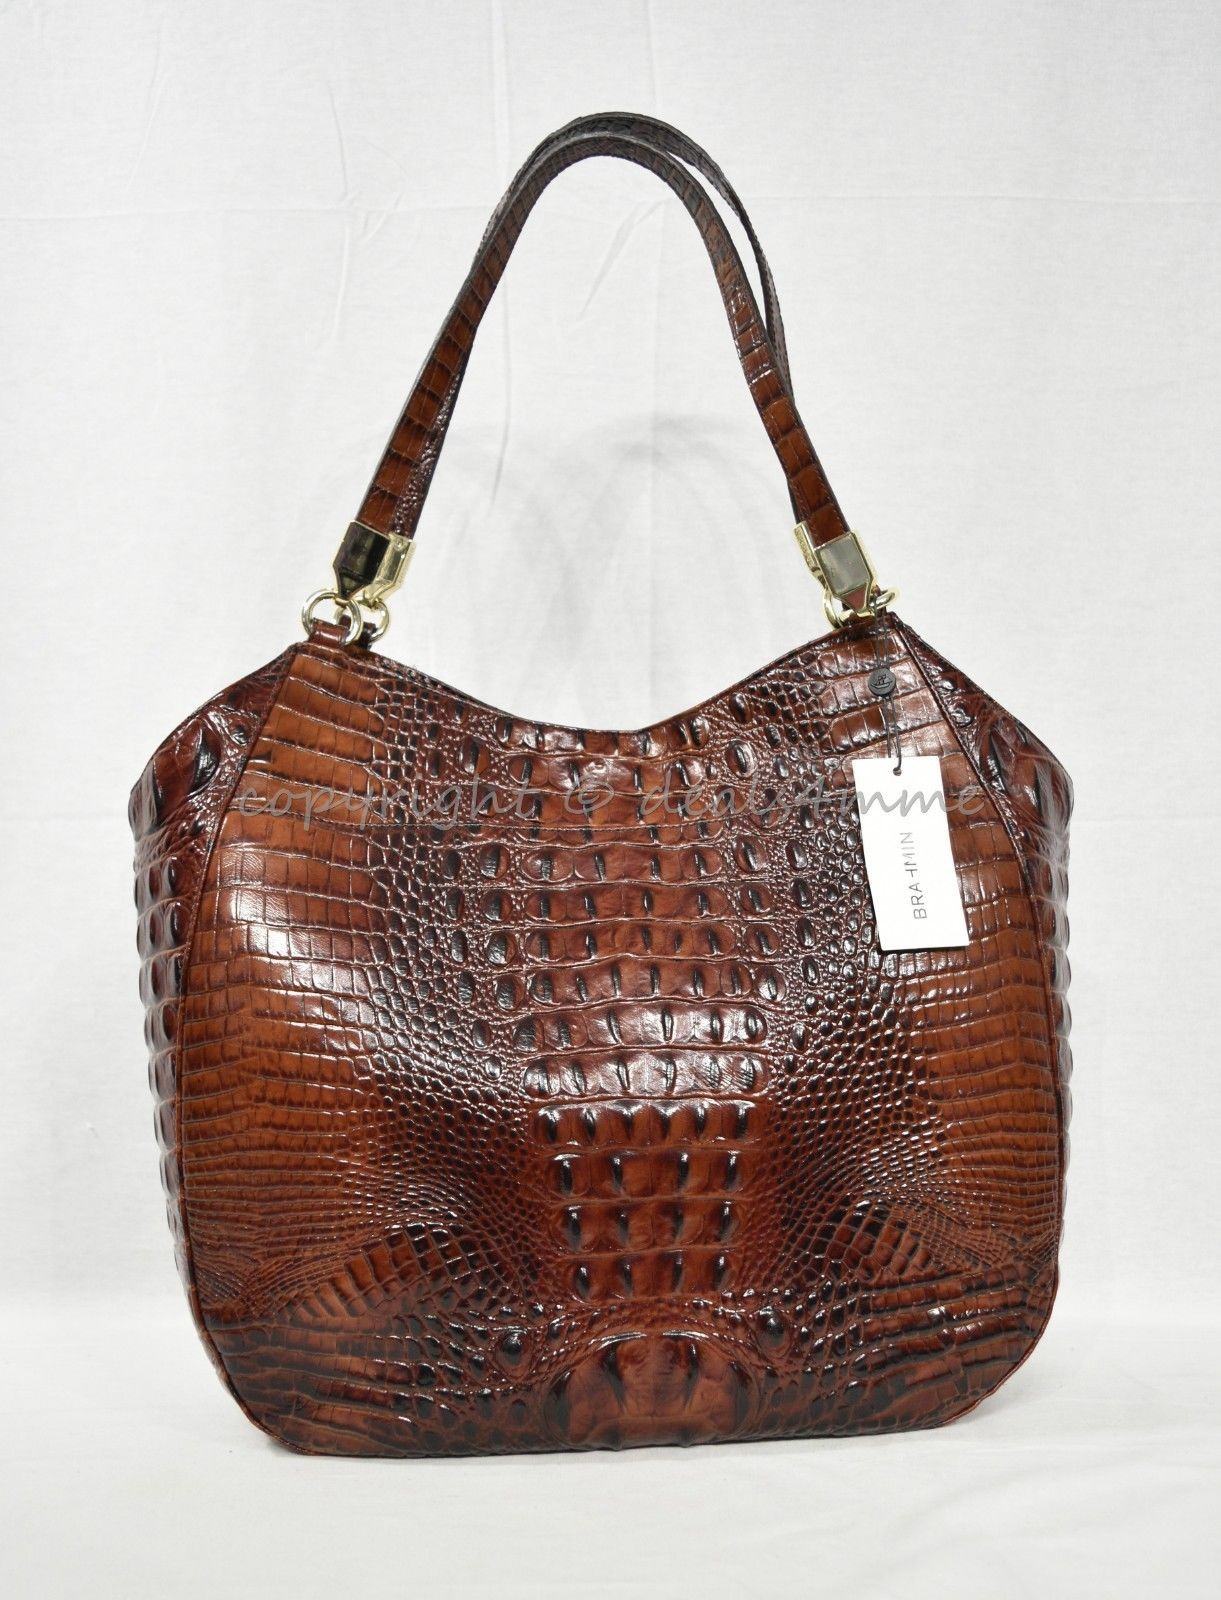 NWT Brahmin Thelma Tote / Shoulder Bag/Tote in Pecan Melbourne Embossed Leather image 3